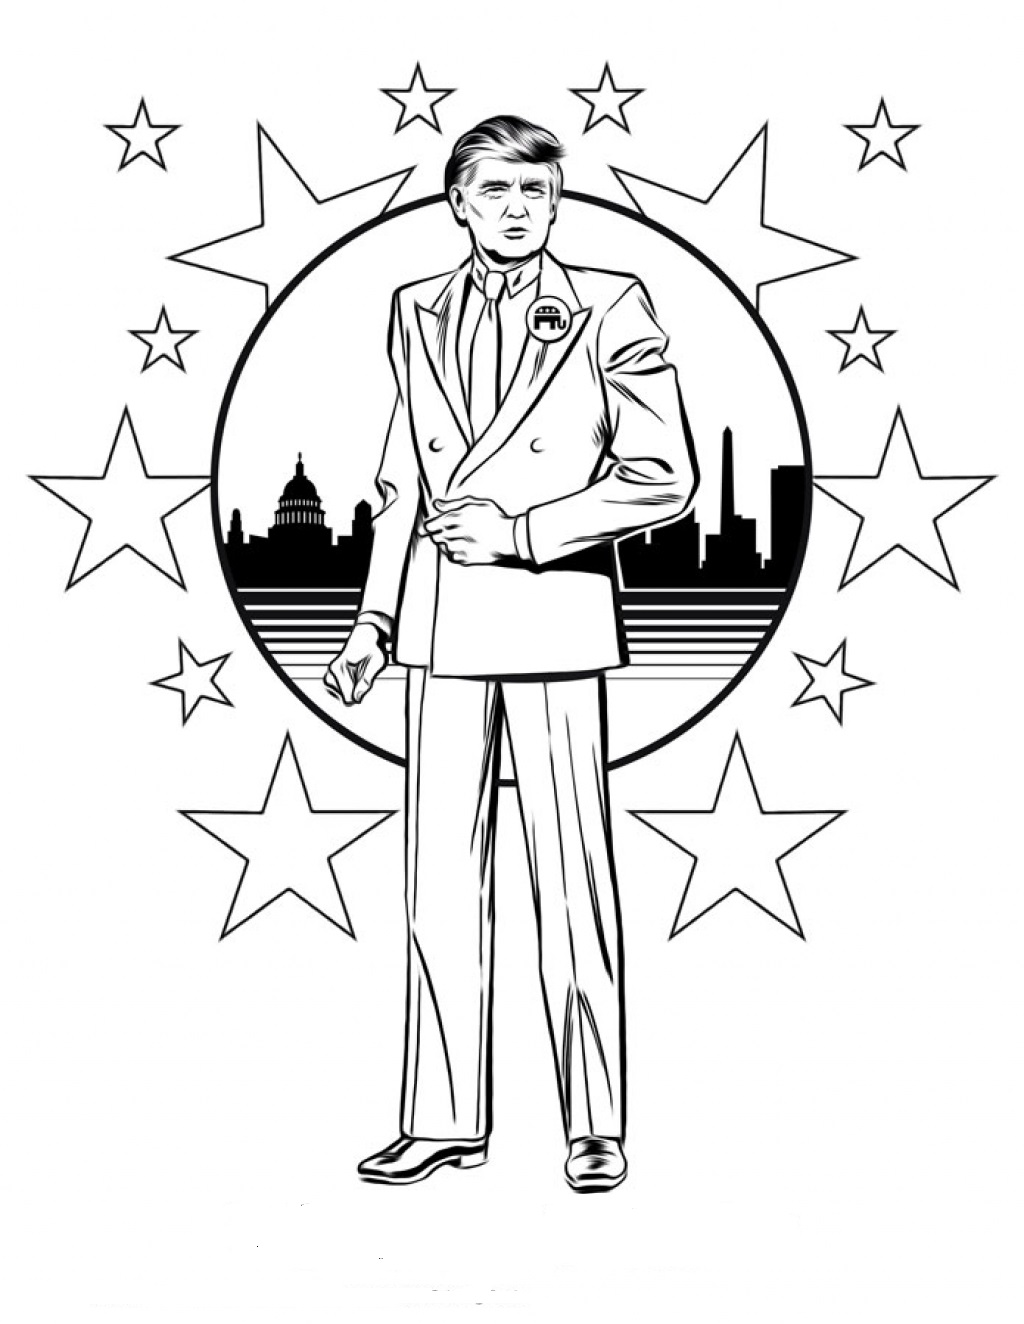 donald trump coloring sheet donald trump 2016 coloring pages printable for kids donald coloring trump sheet